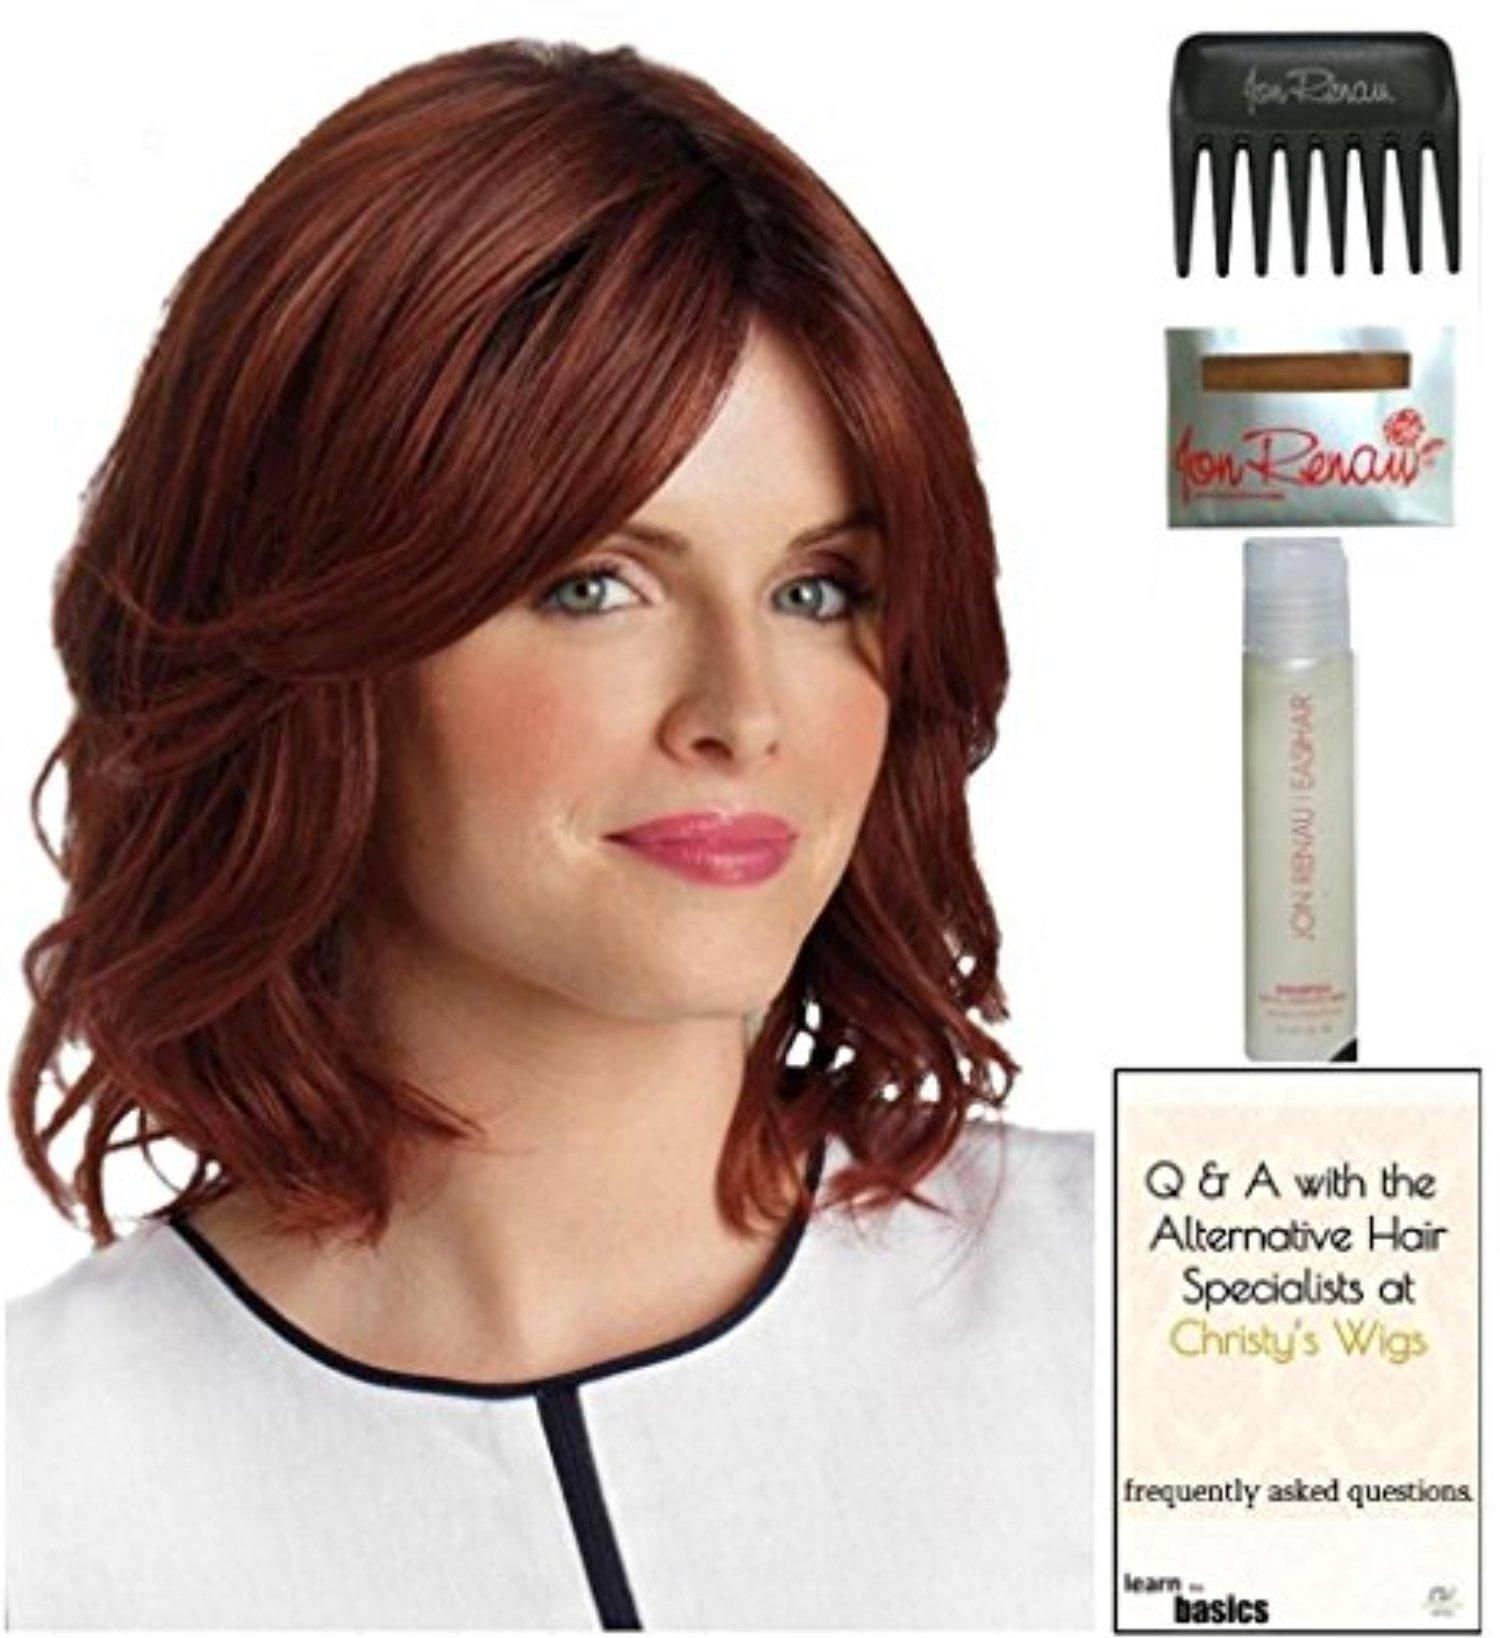 Alondra Wig by Revlon Christy s Wigs Q & A Booklet 2oz Travel Size